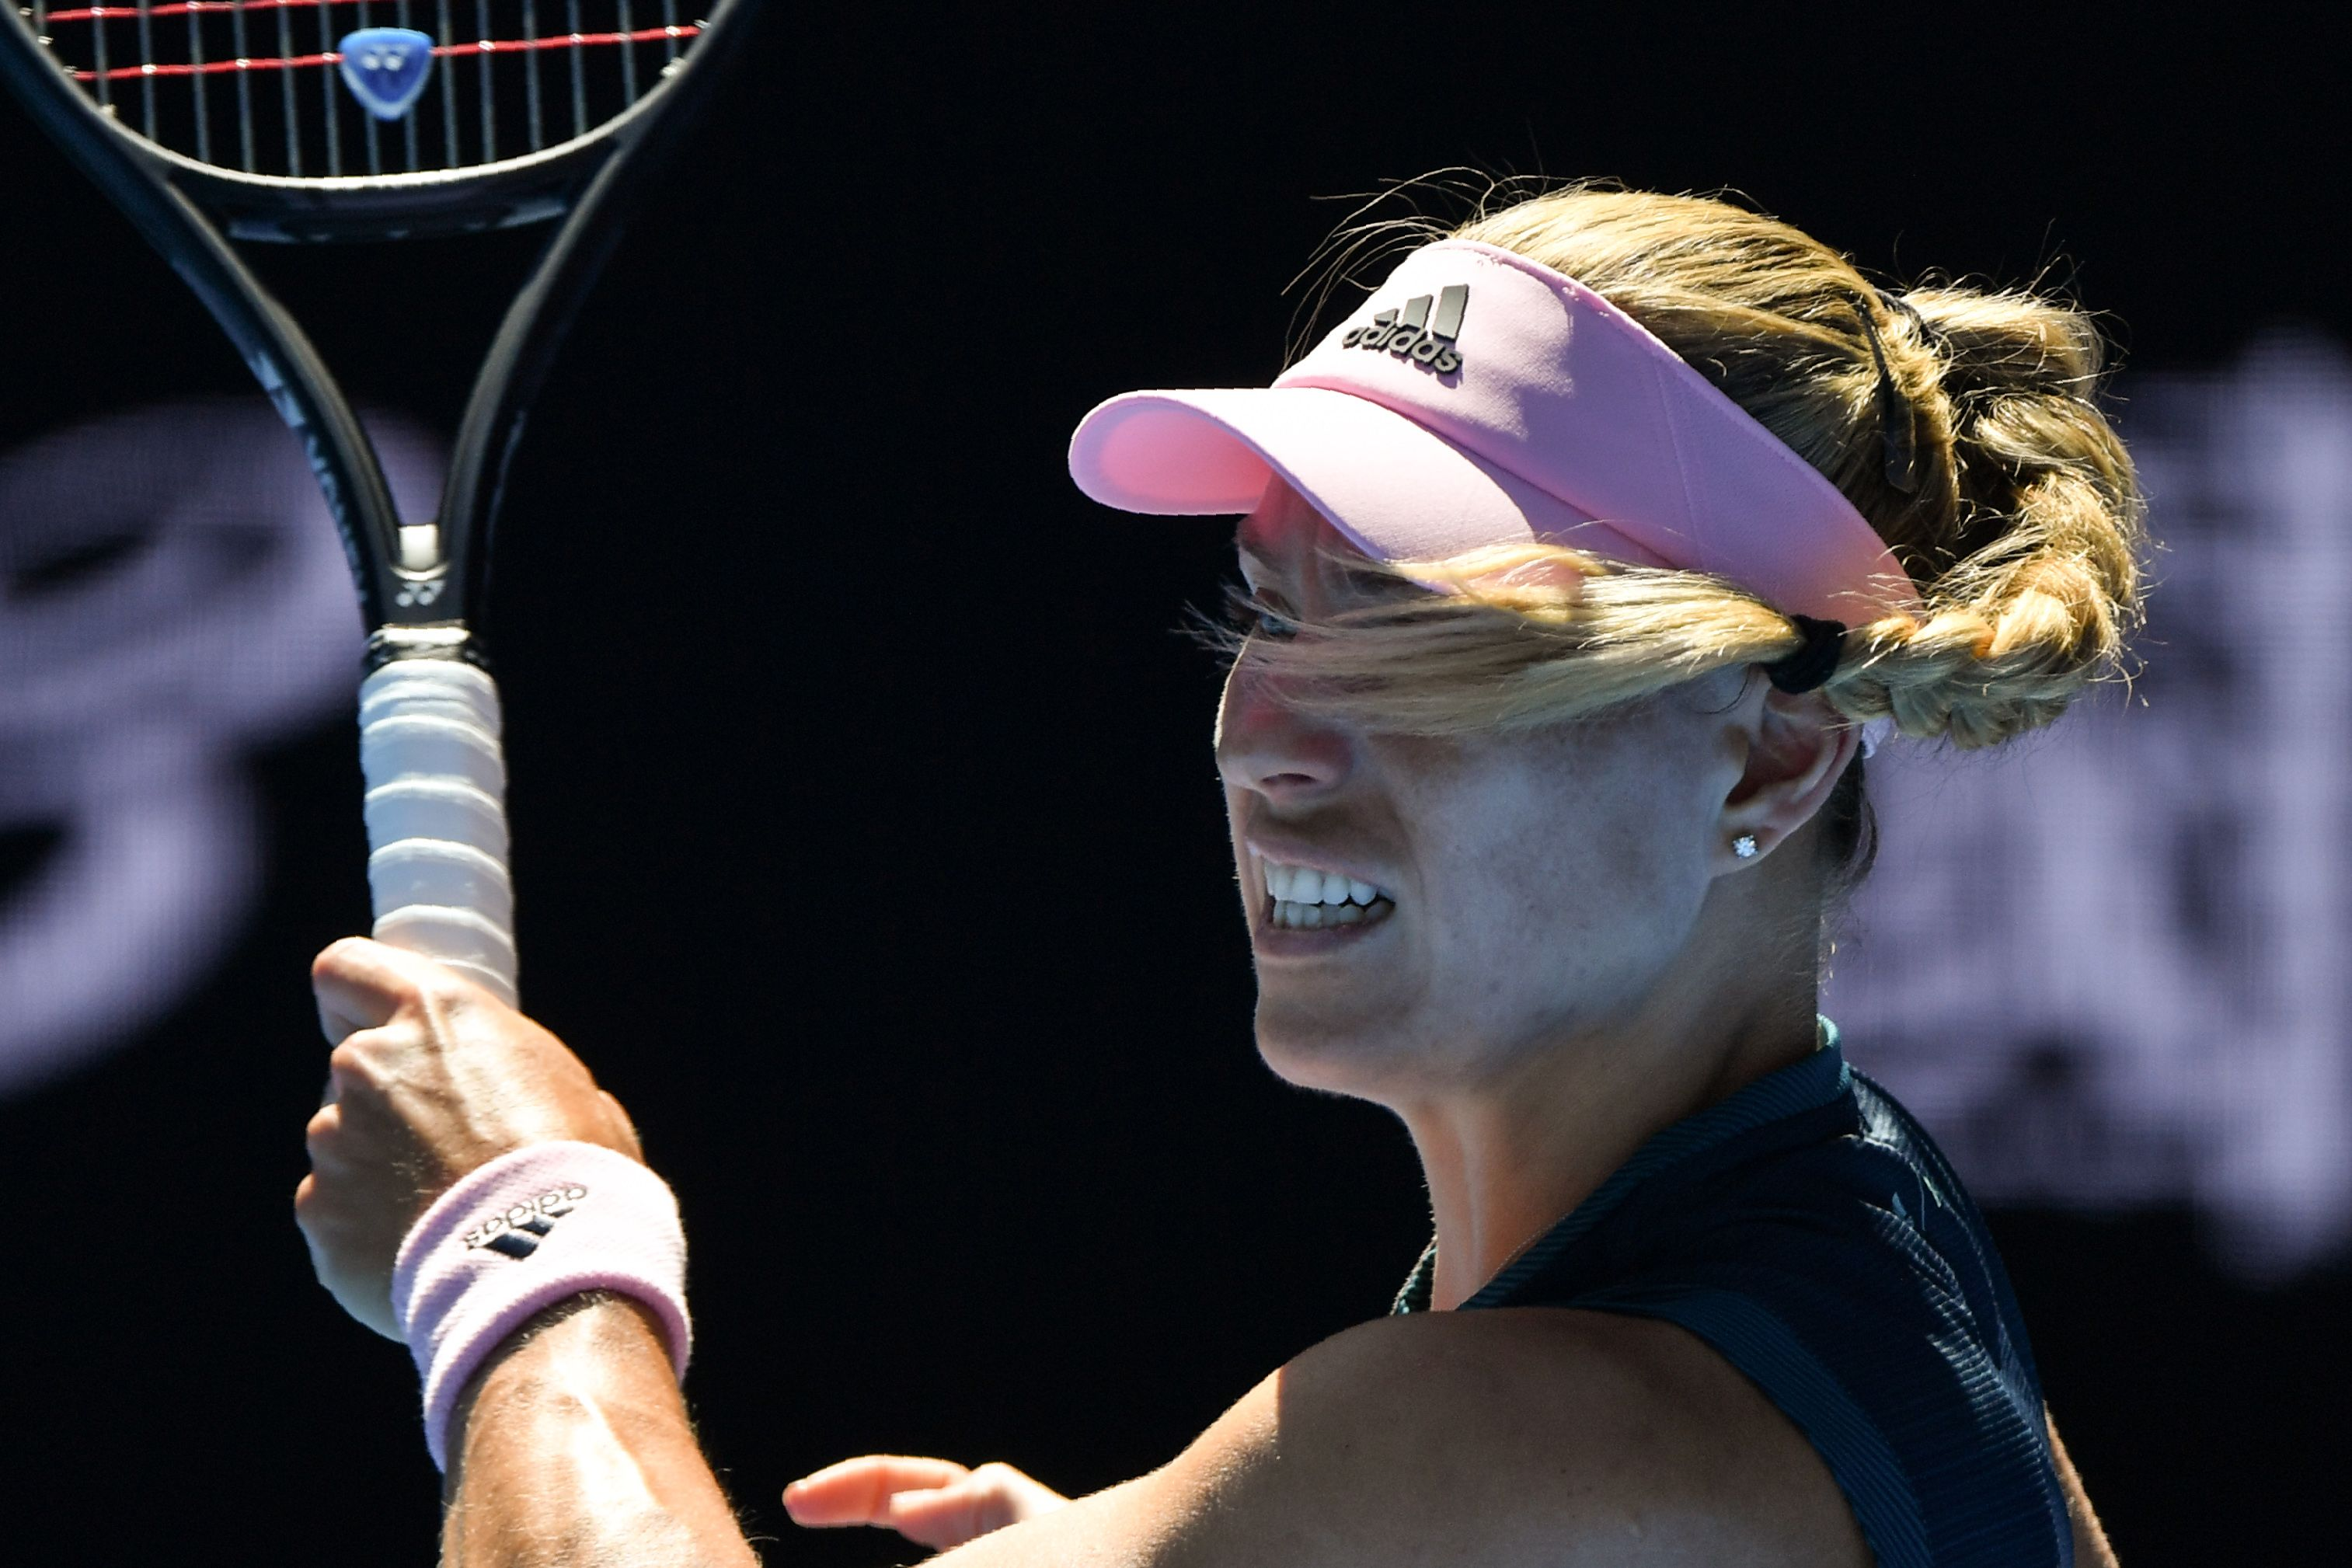 Kerber humbled by unheralded American in Open upset